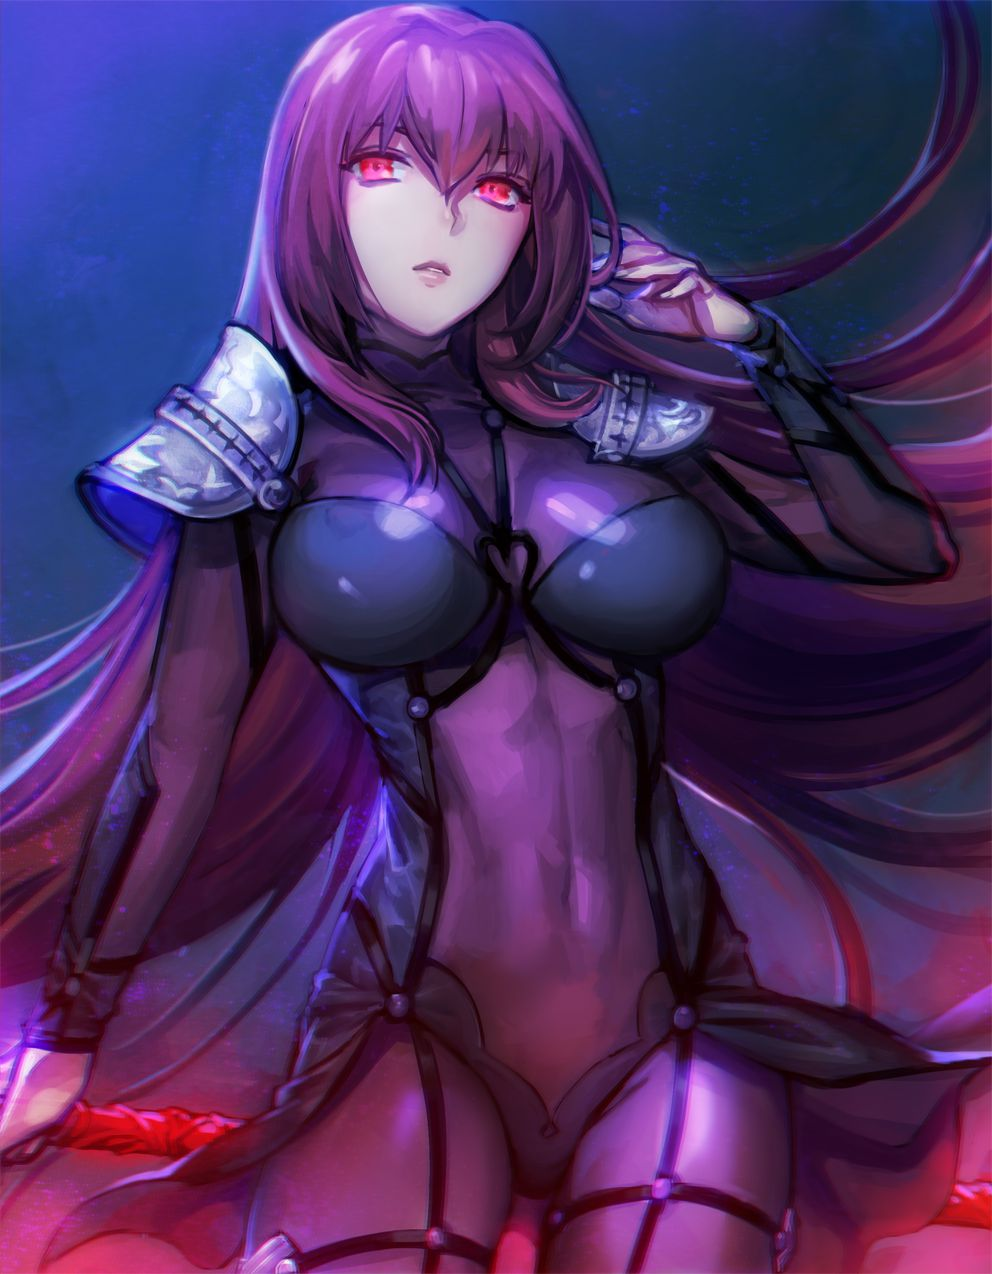 scathach_(fategrand_order)121